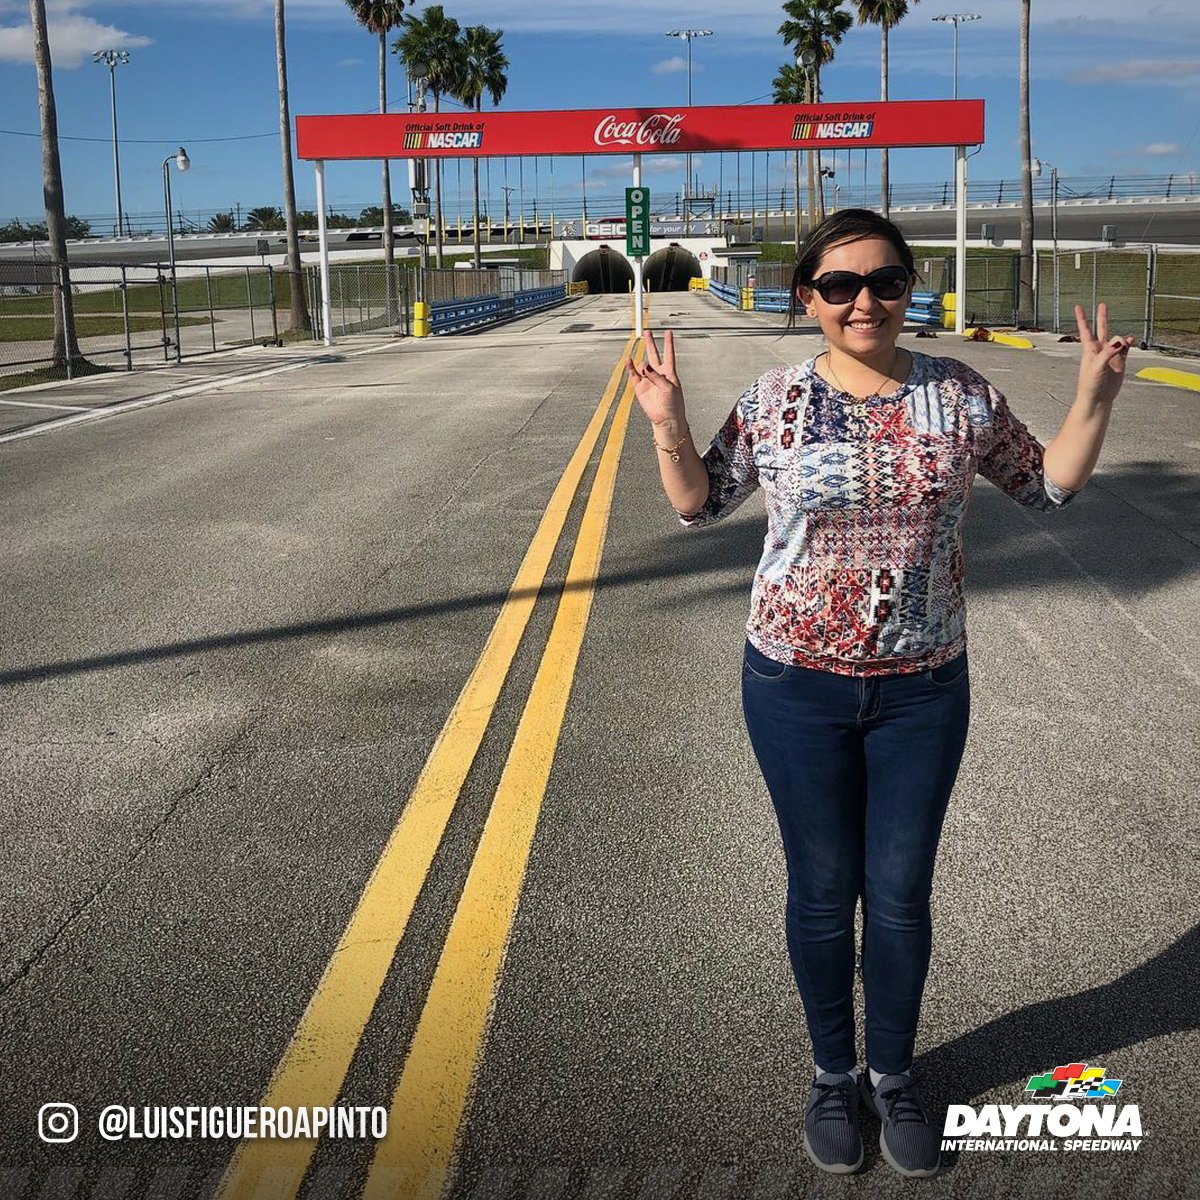 It's always all smiles when you're at DAYTONA!  #FanFriday